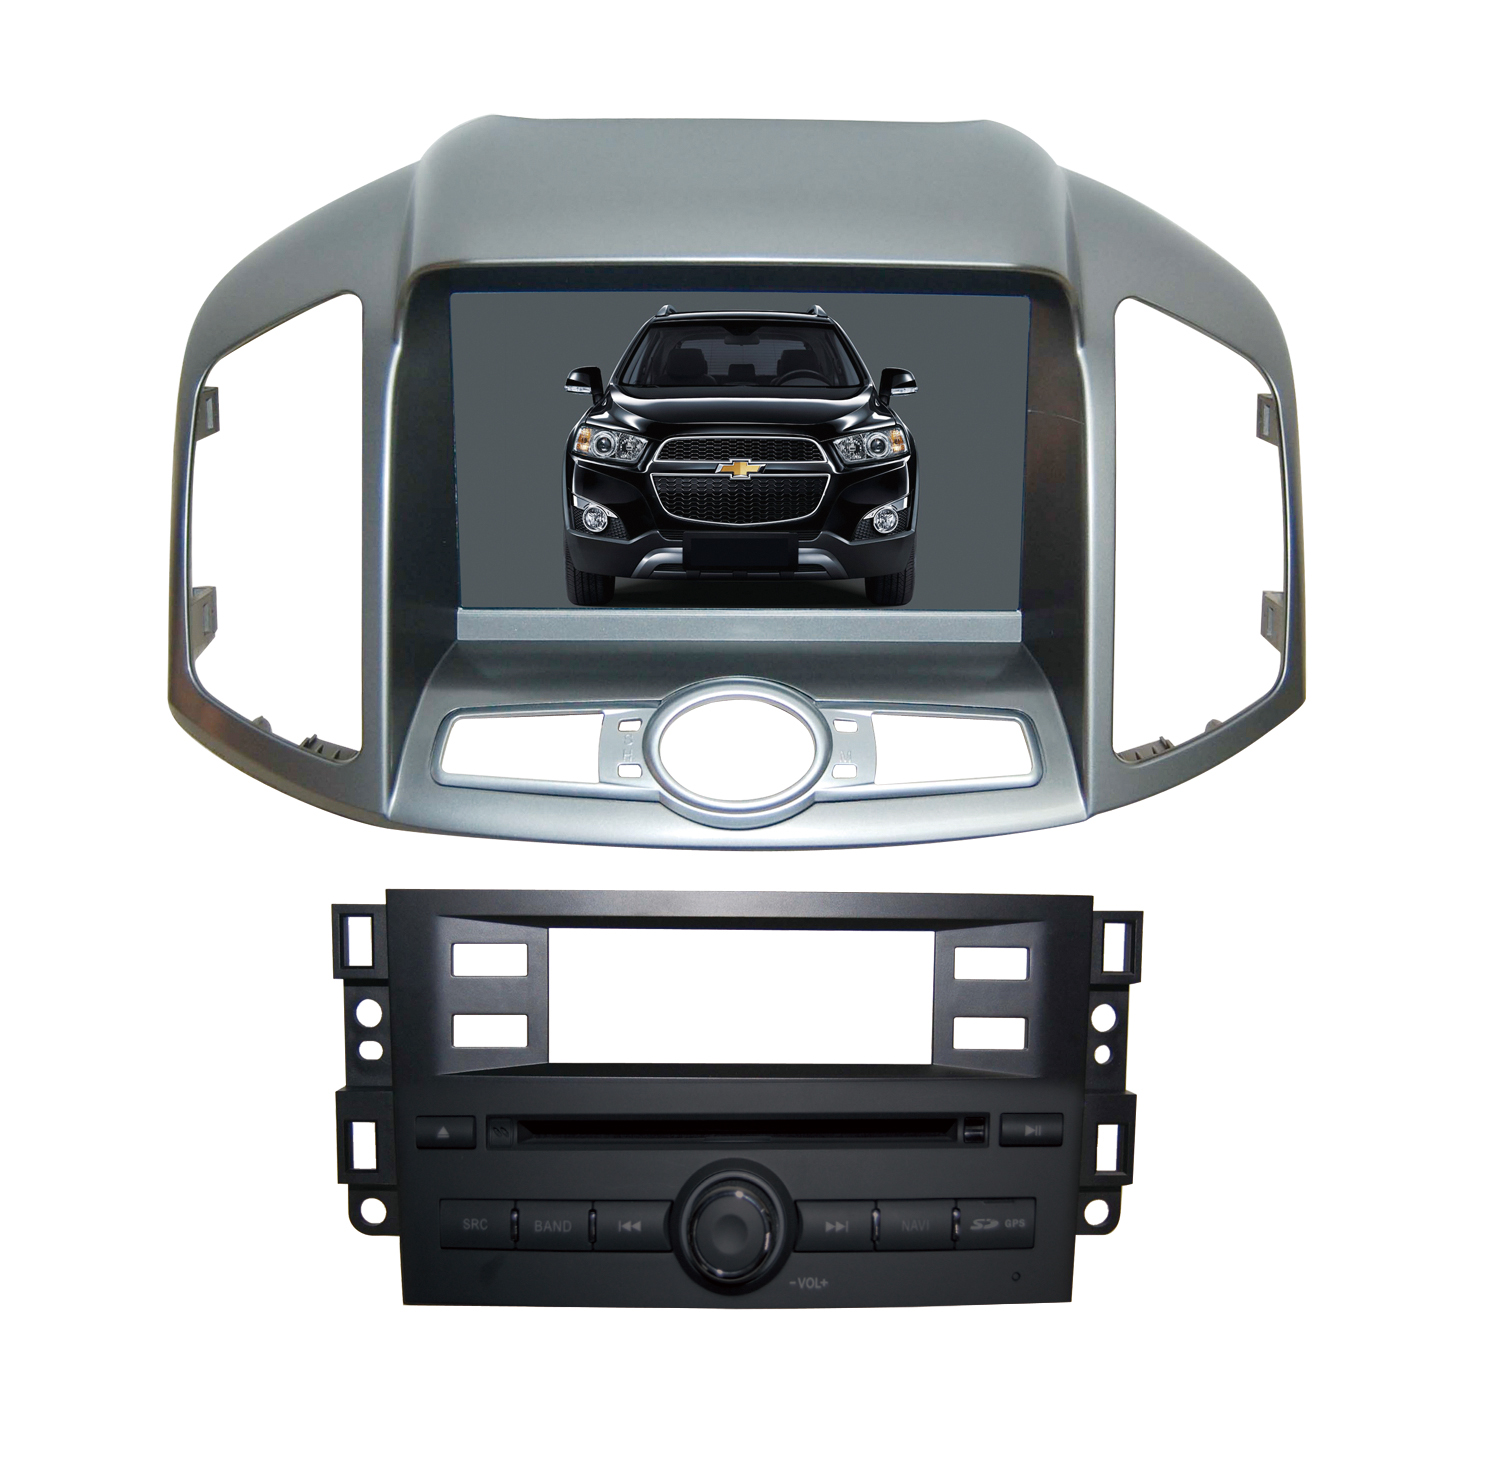 autoradio gps wifi dvd cd bluetooth usb sd pour chevrolet captiva windows processeur 1ghz. Black Bedroom Furniture Sets. Home Design Ideas